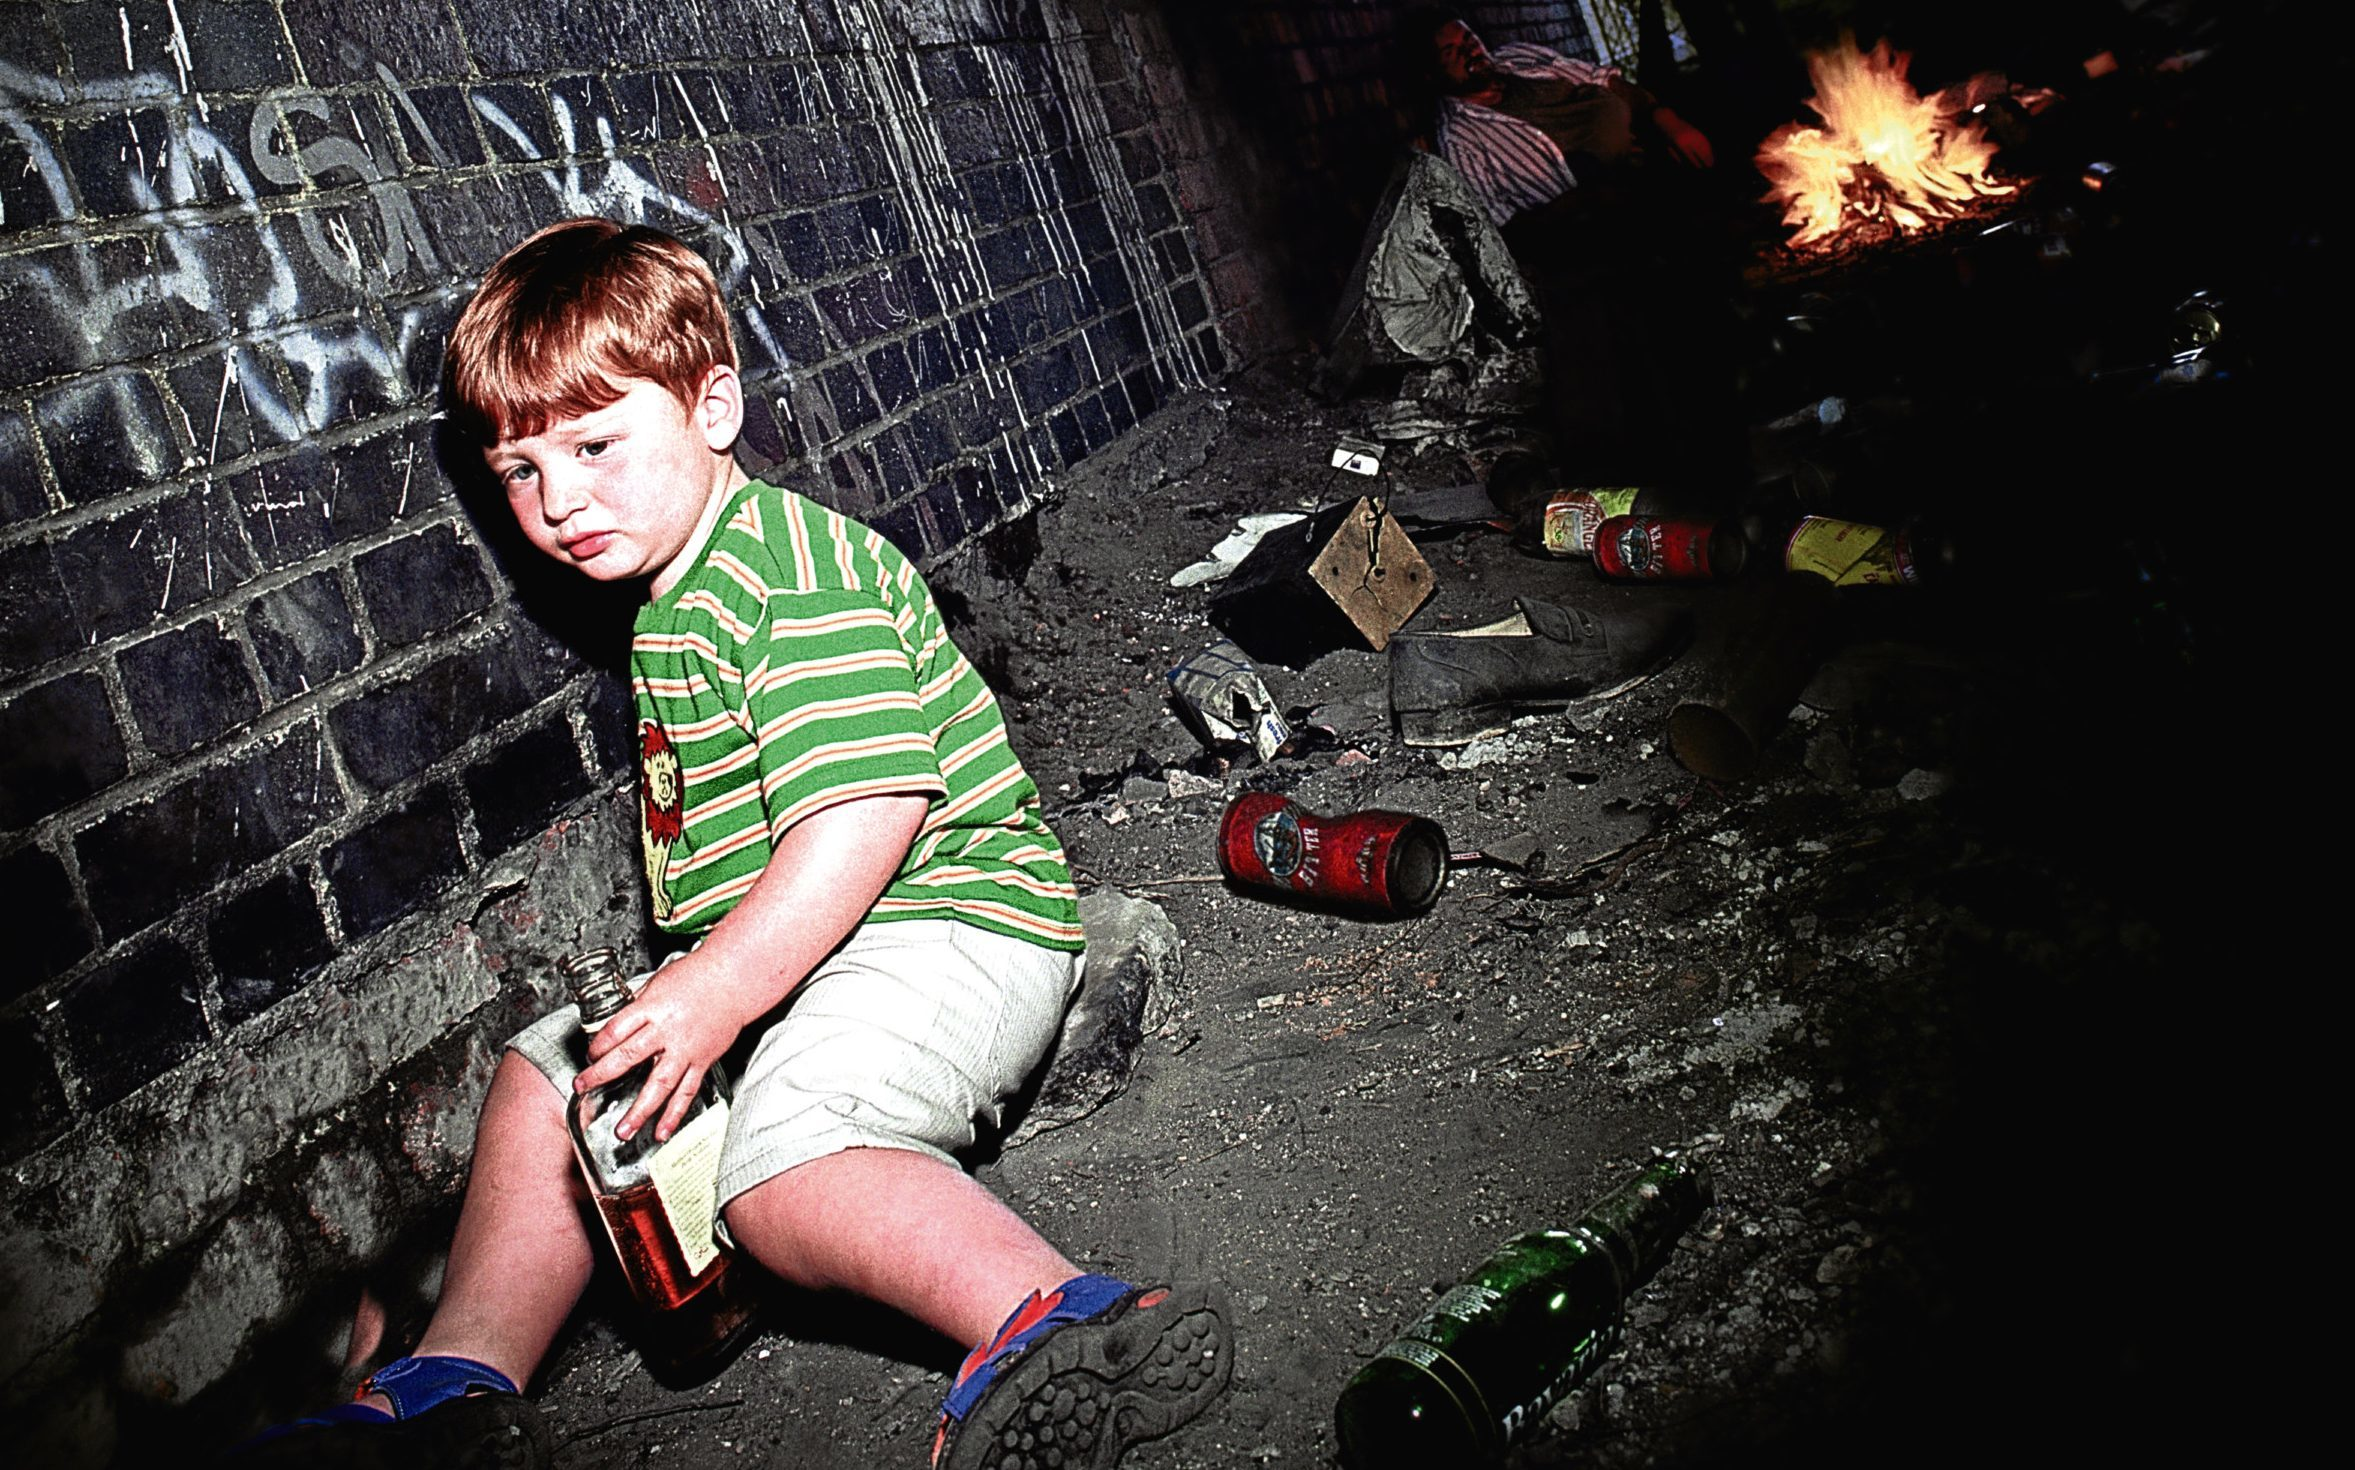 Experts warn youngsters being raised by problem          drinkers are suffering shattered childhoods and blighted futures